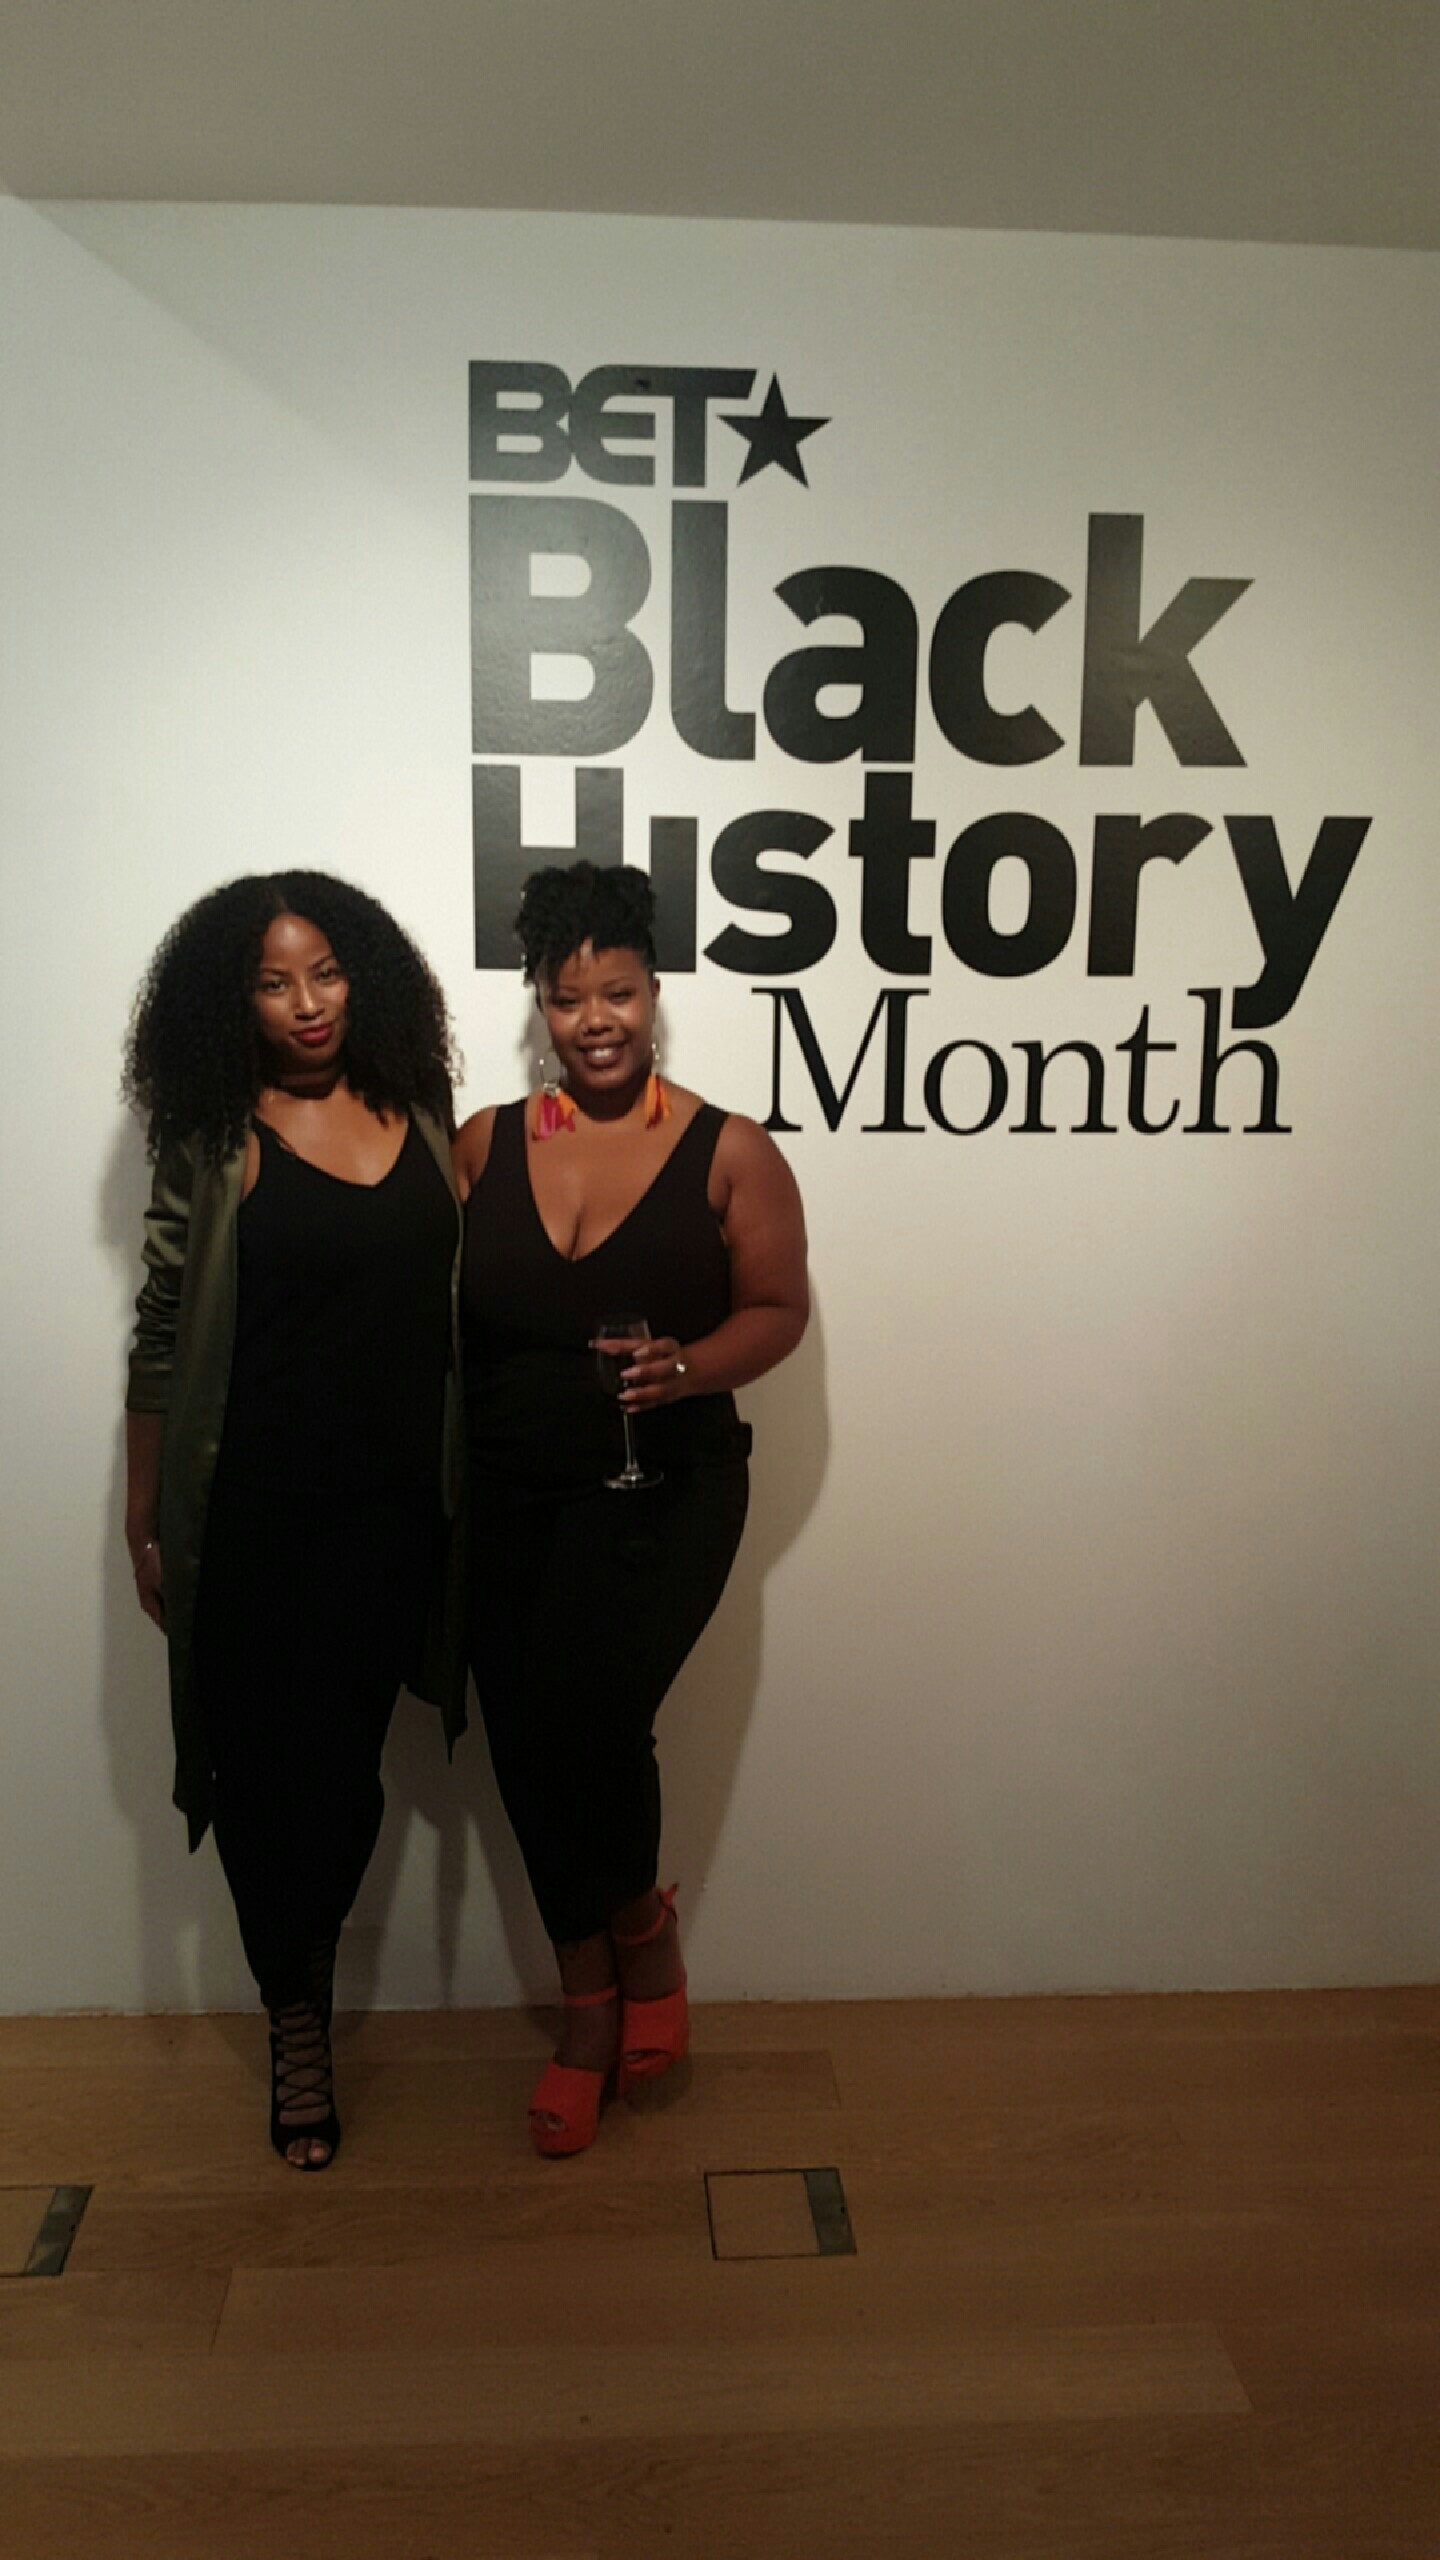 BET Black History Month 2016